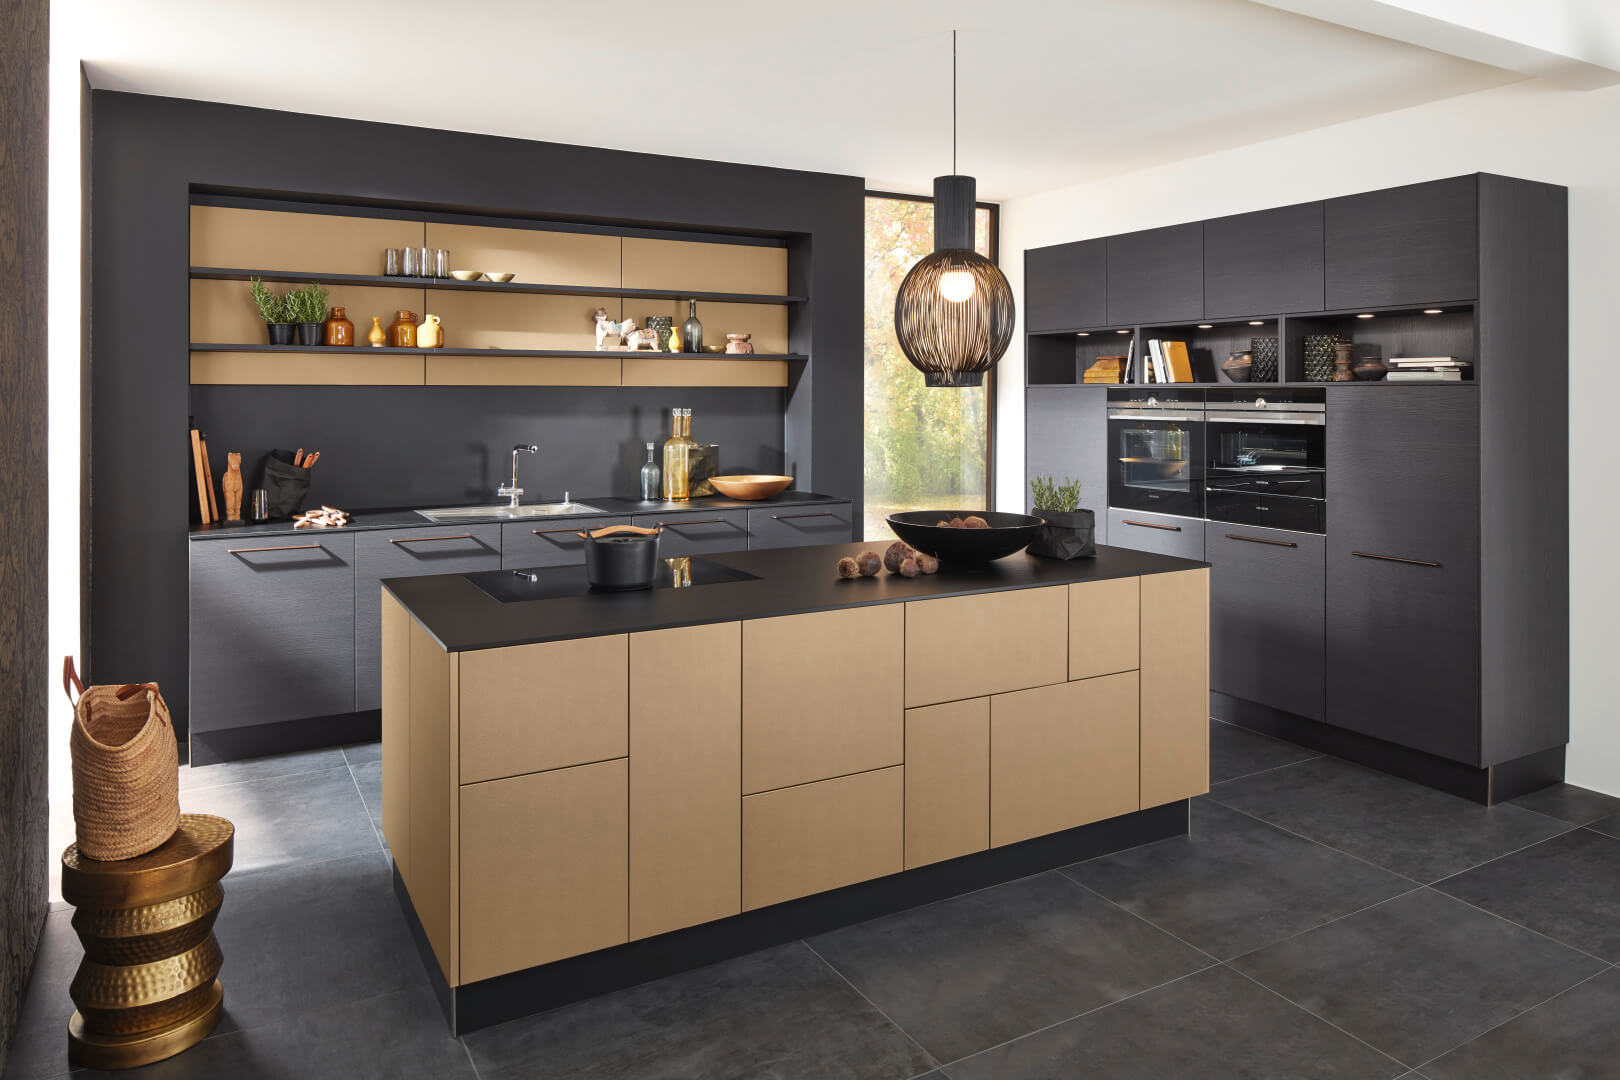 Nolte-Kitchens-Nature-Gallery8